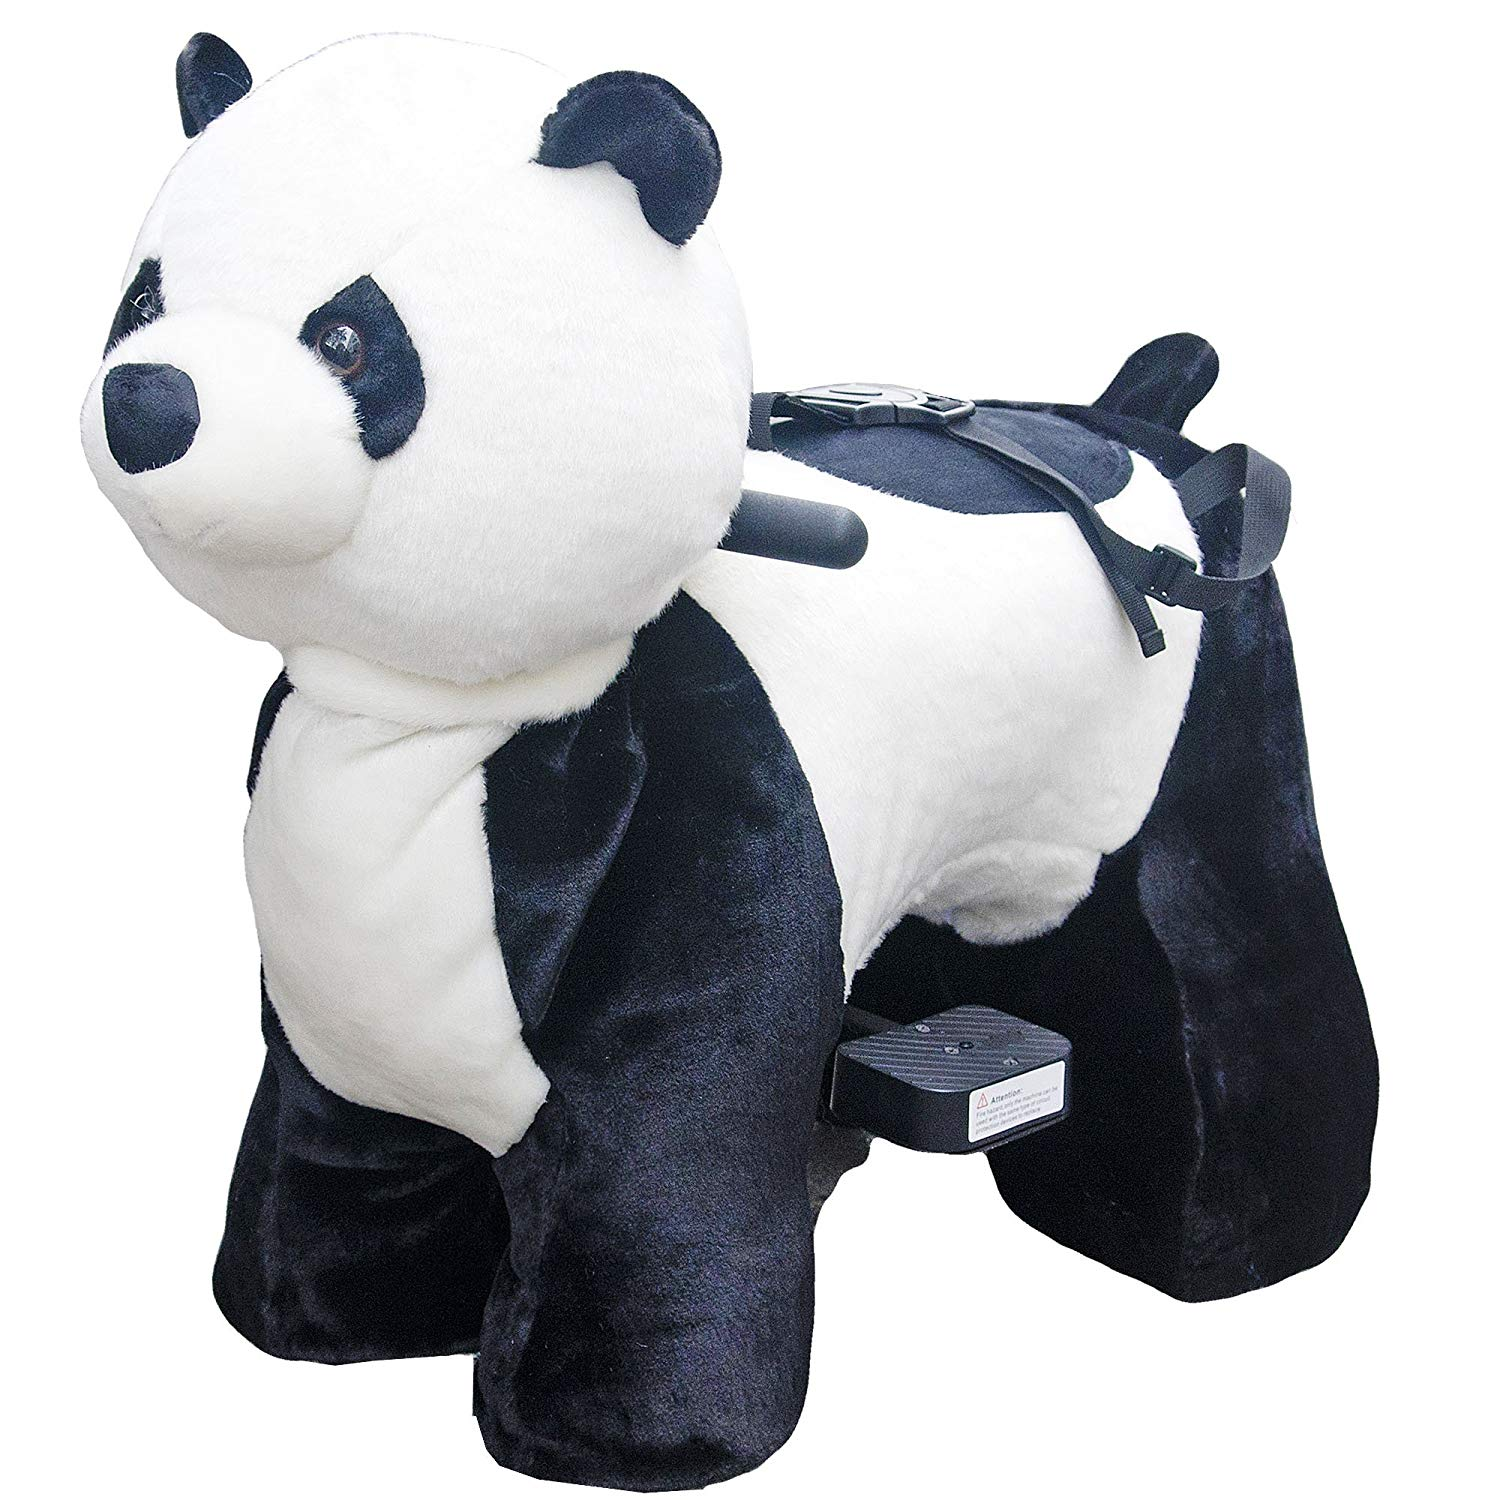 Rechargeable 6V 7A Plush Animal Ride On Toy for Kids (3 ~ 7 Years Old) With Safety Belt Panda by HOVERHEART